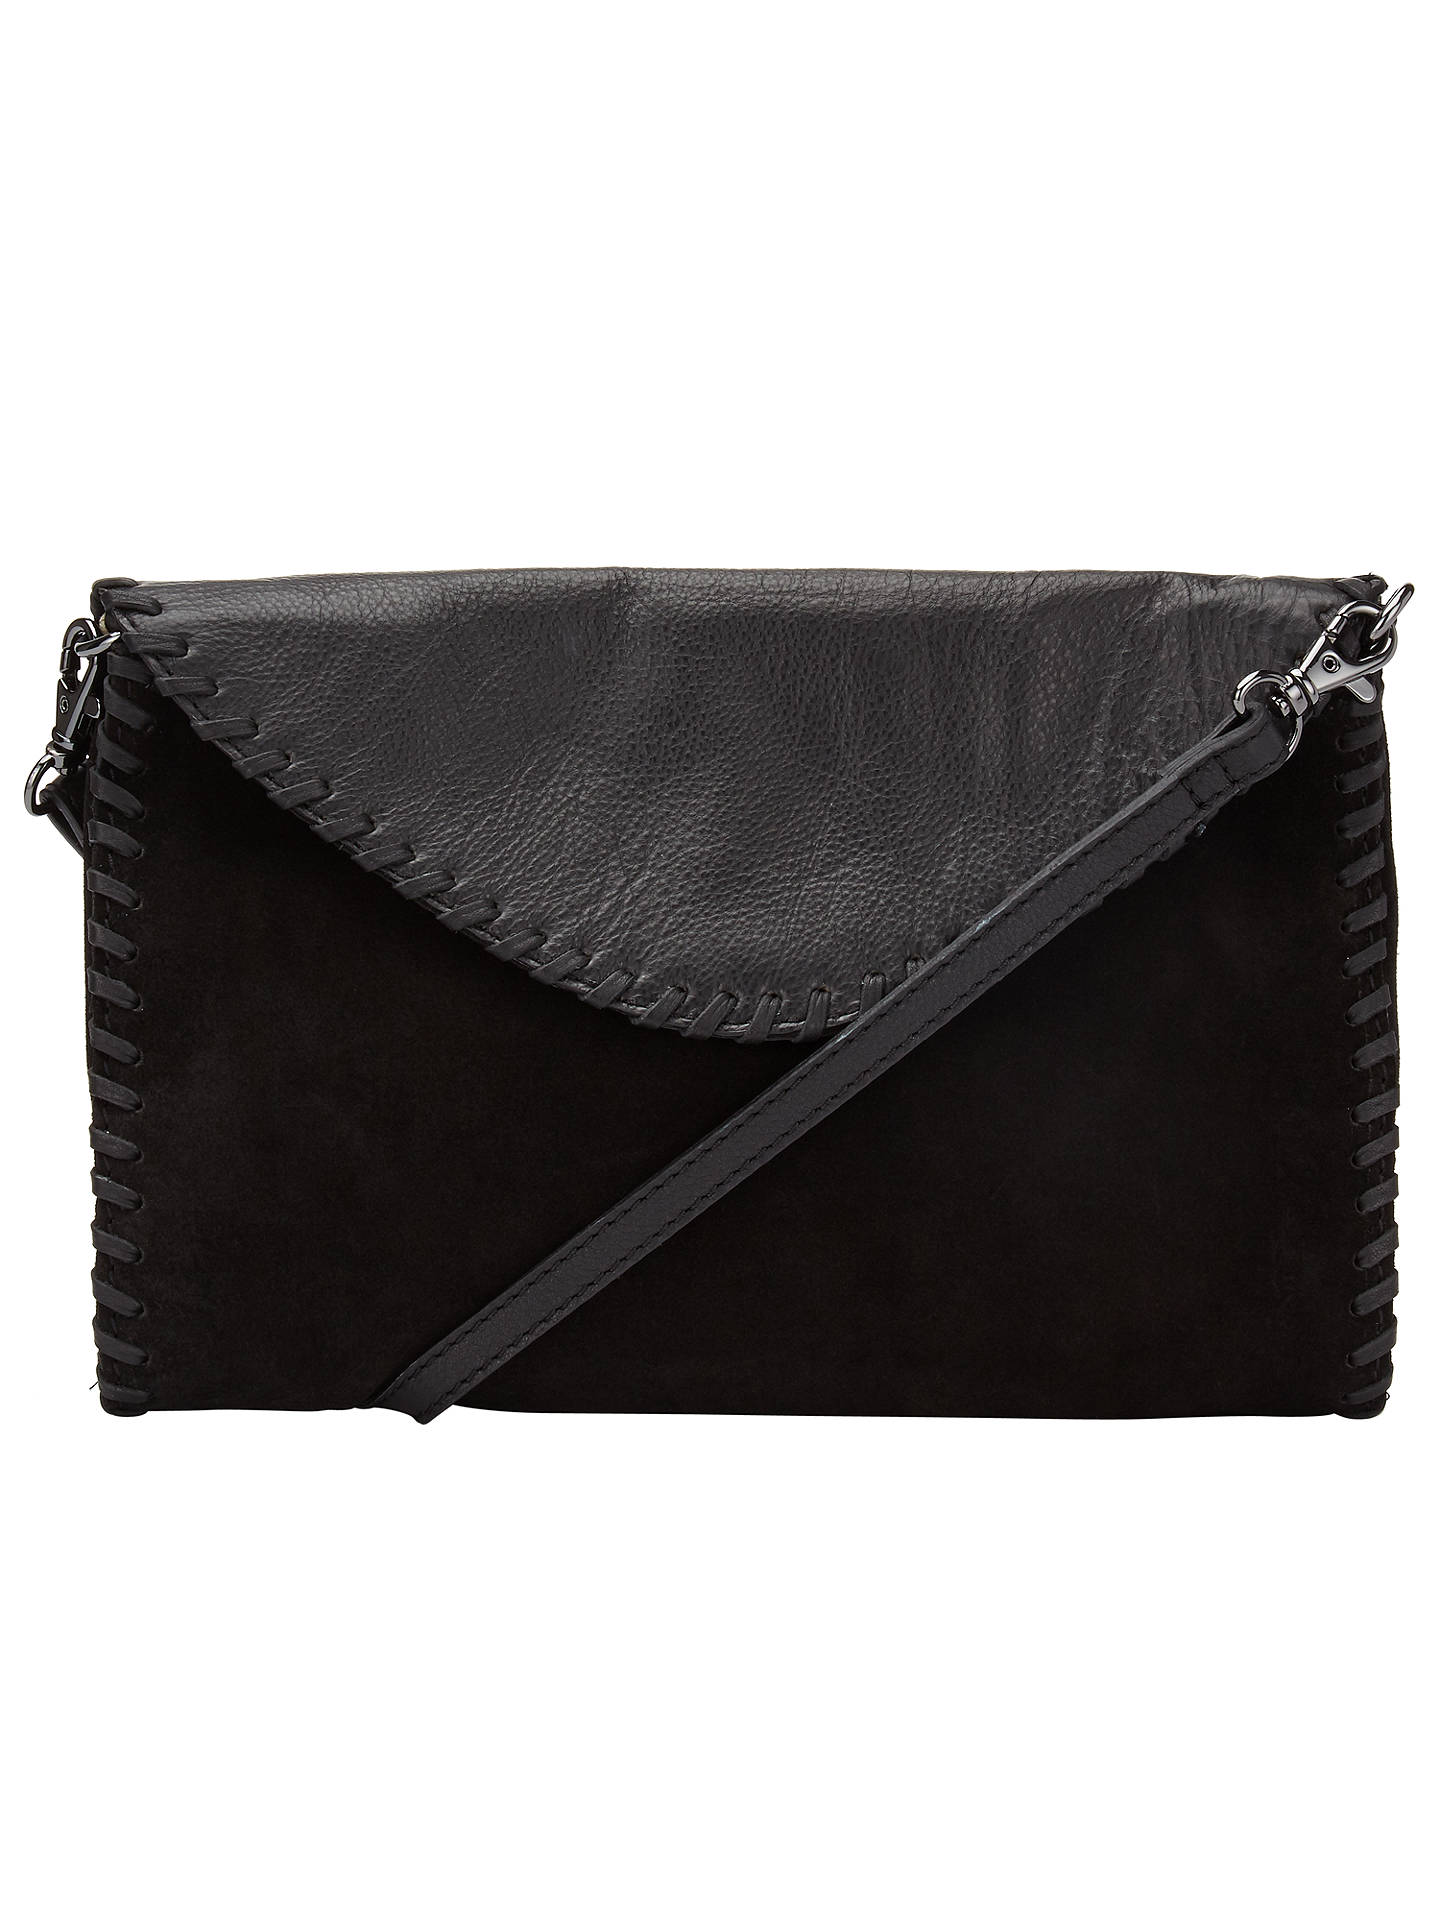 Pieces Gesma Suede Across Body Bag Black Online At Johnlewis